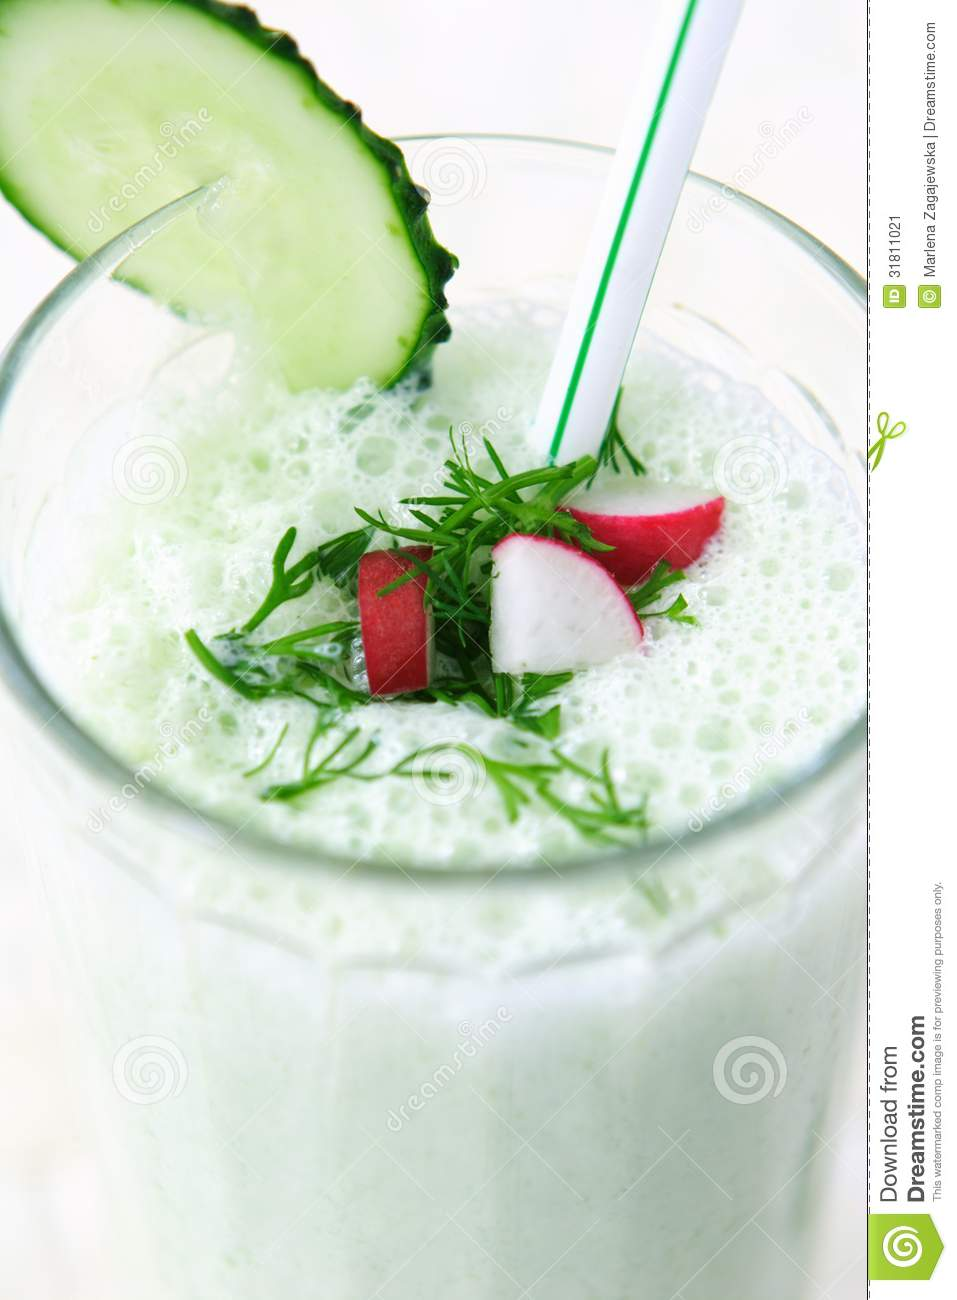 Dairy vegetable cocktail